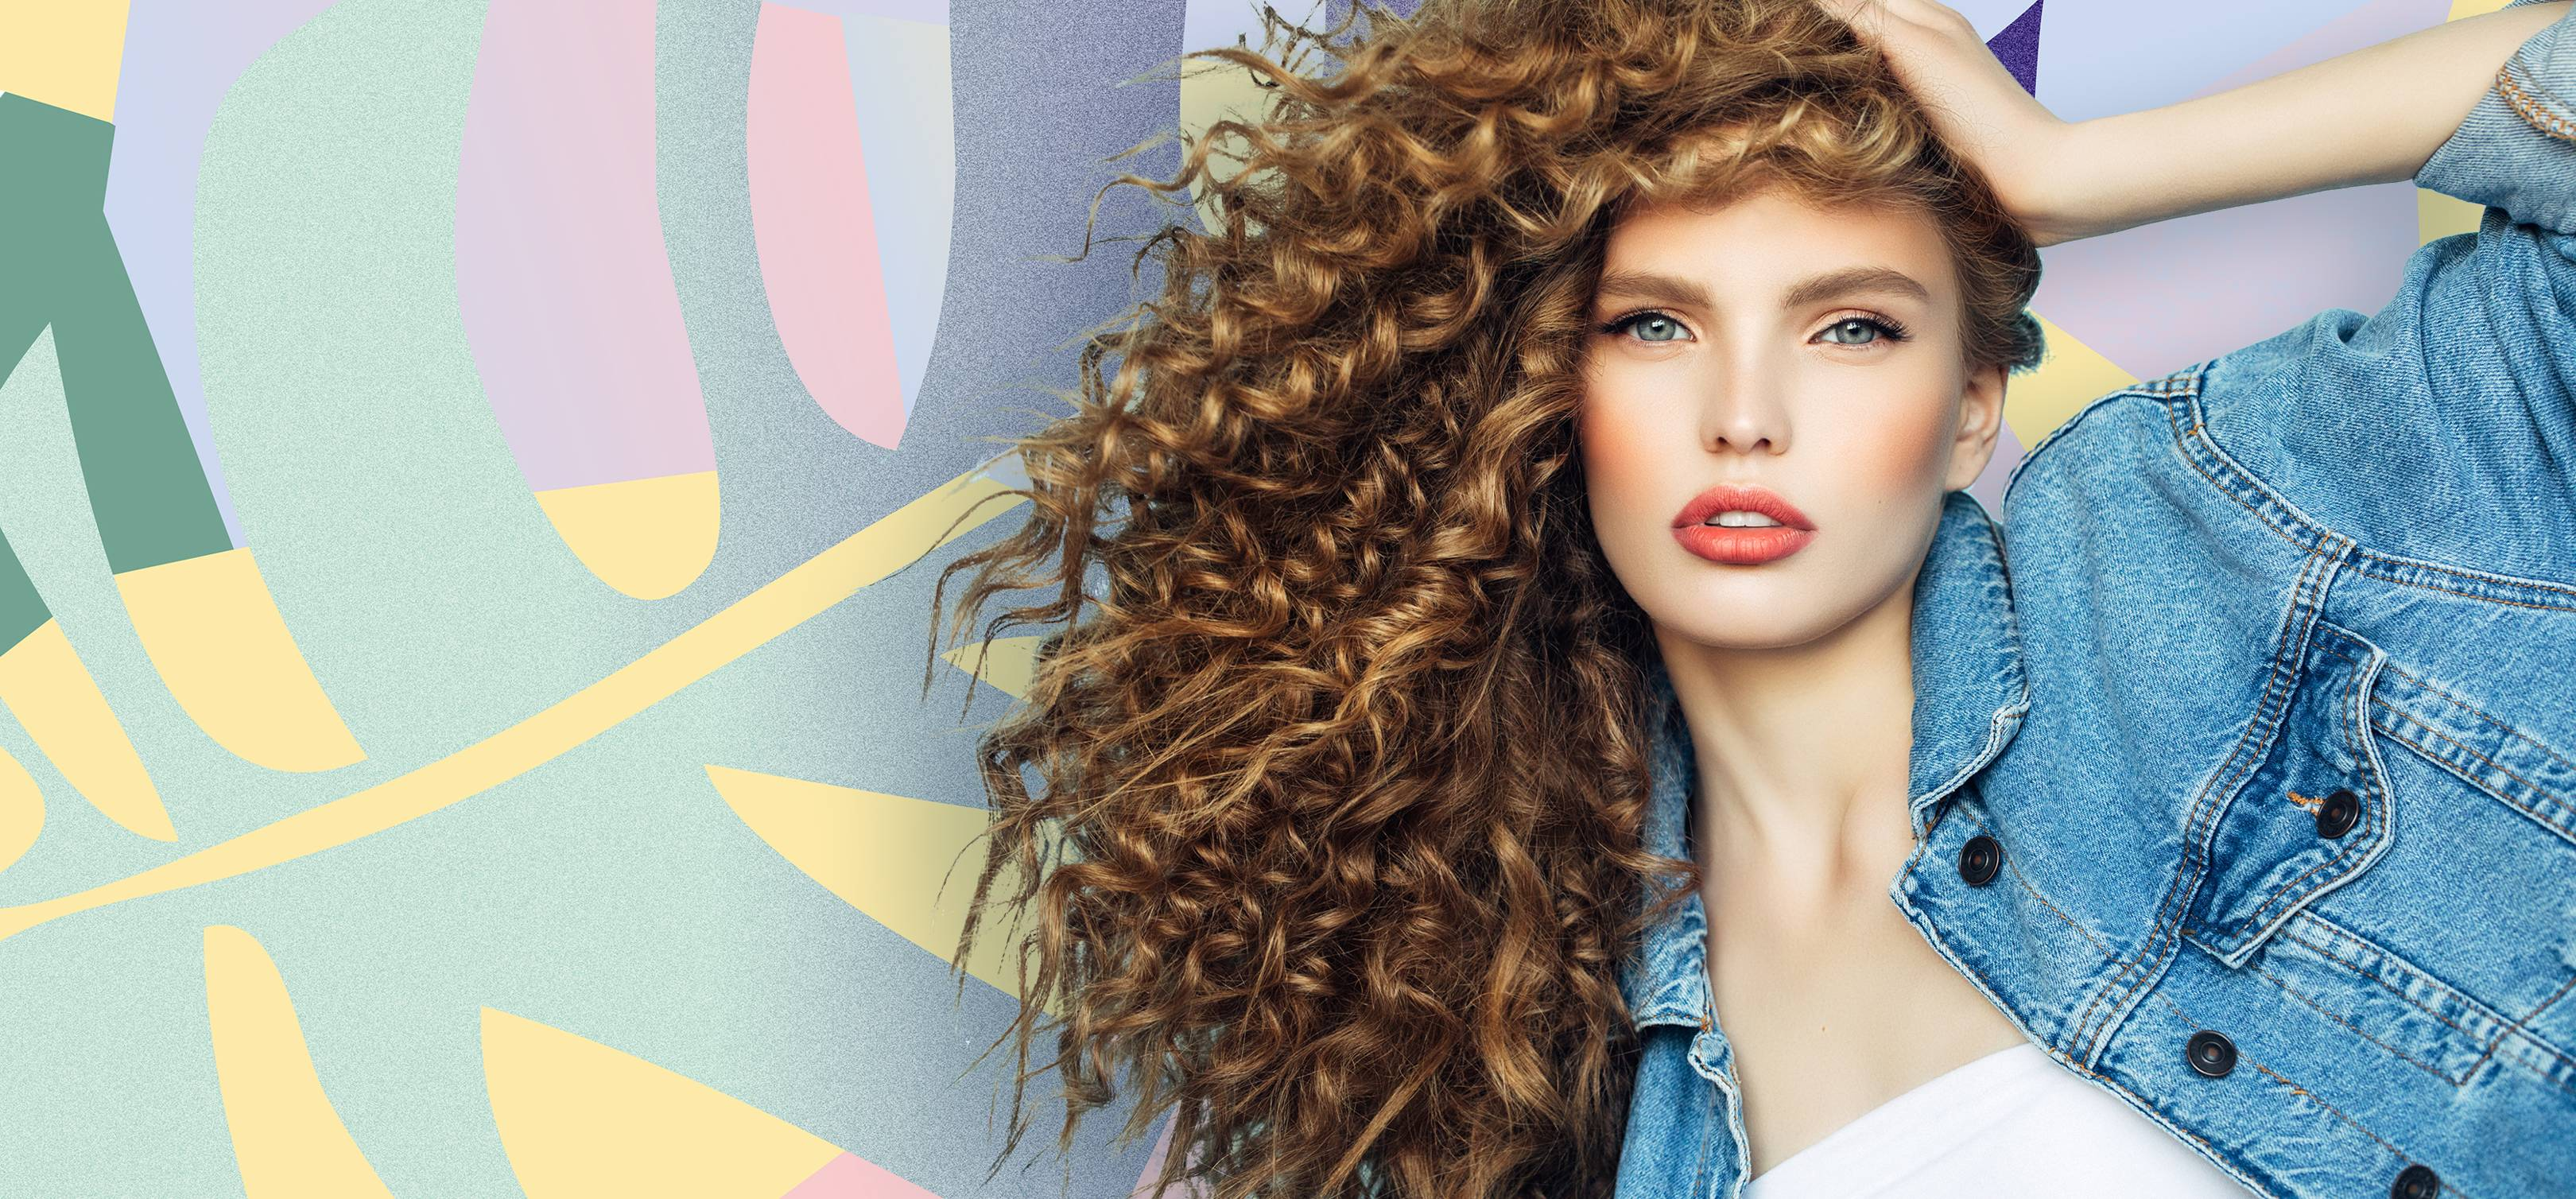 Best Shampoo For Curly Hair Aveda Bumble Bumble Kerastase